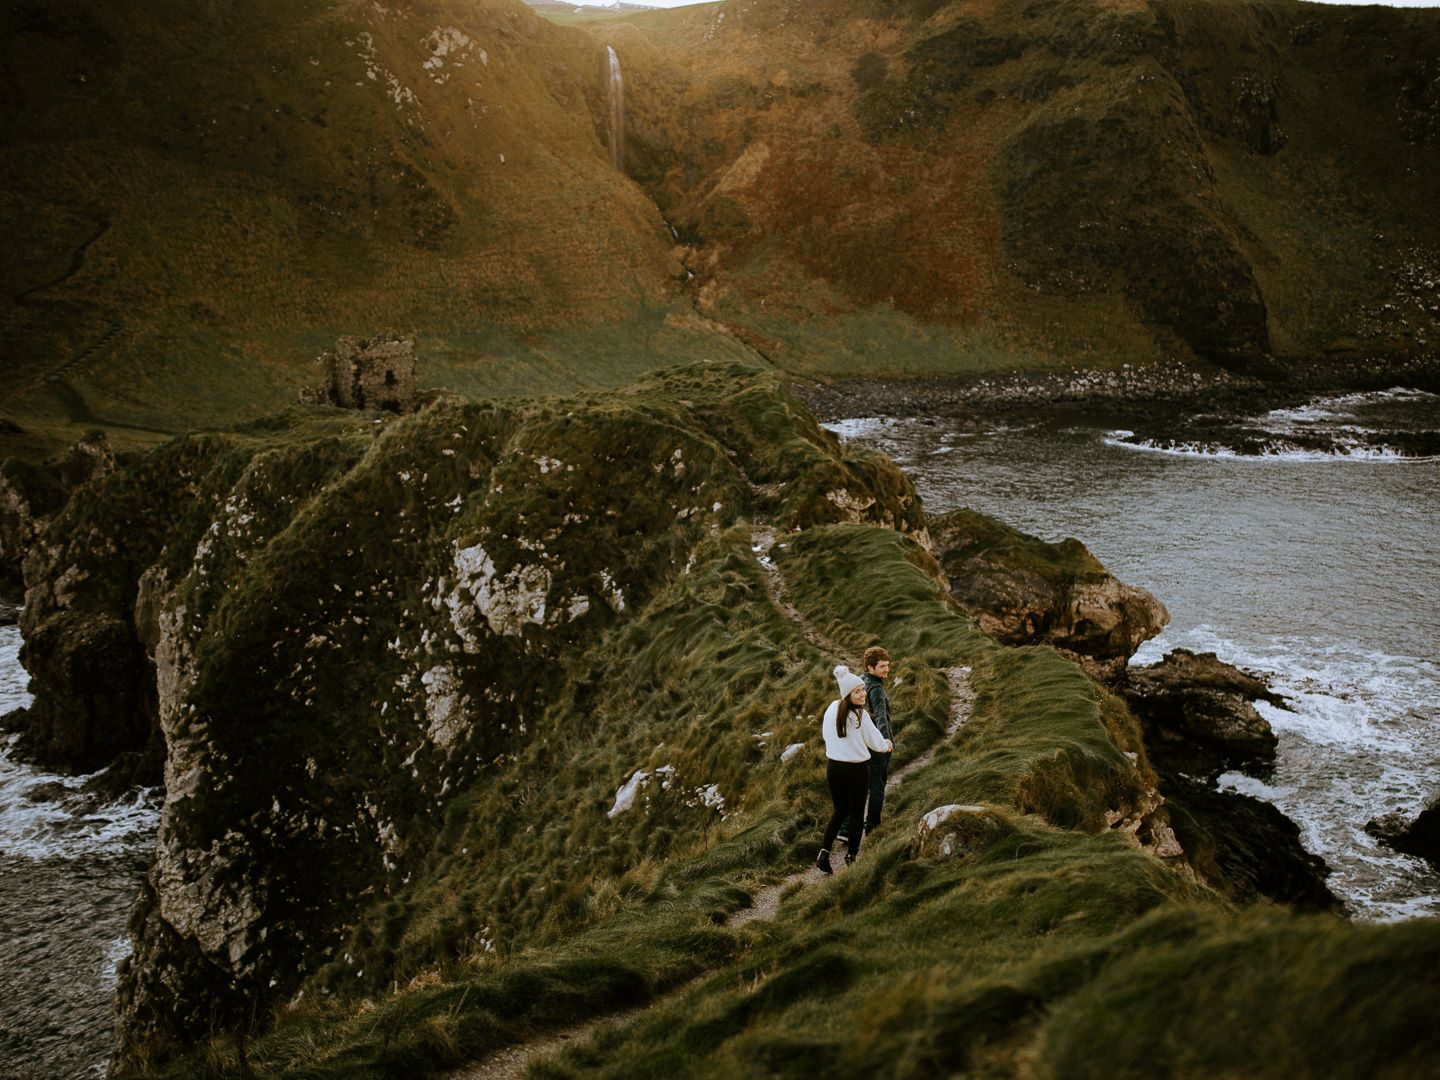 engagement photoshoot at Kinbane Castle in Northern Ireland's Causeway coast